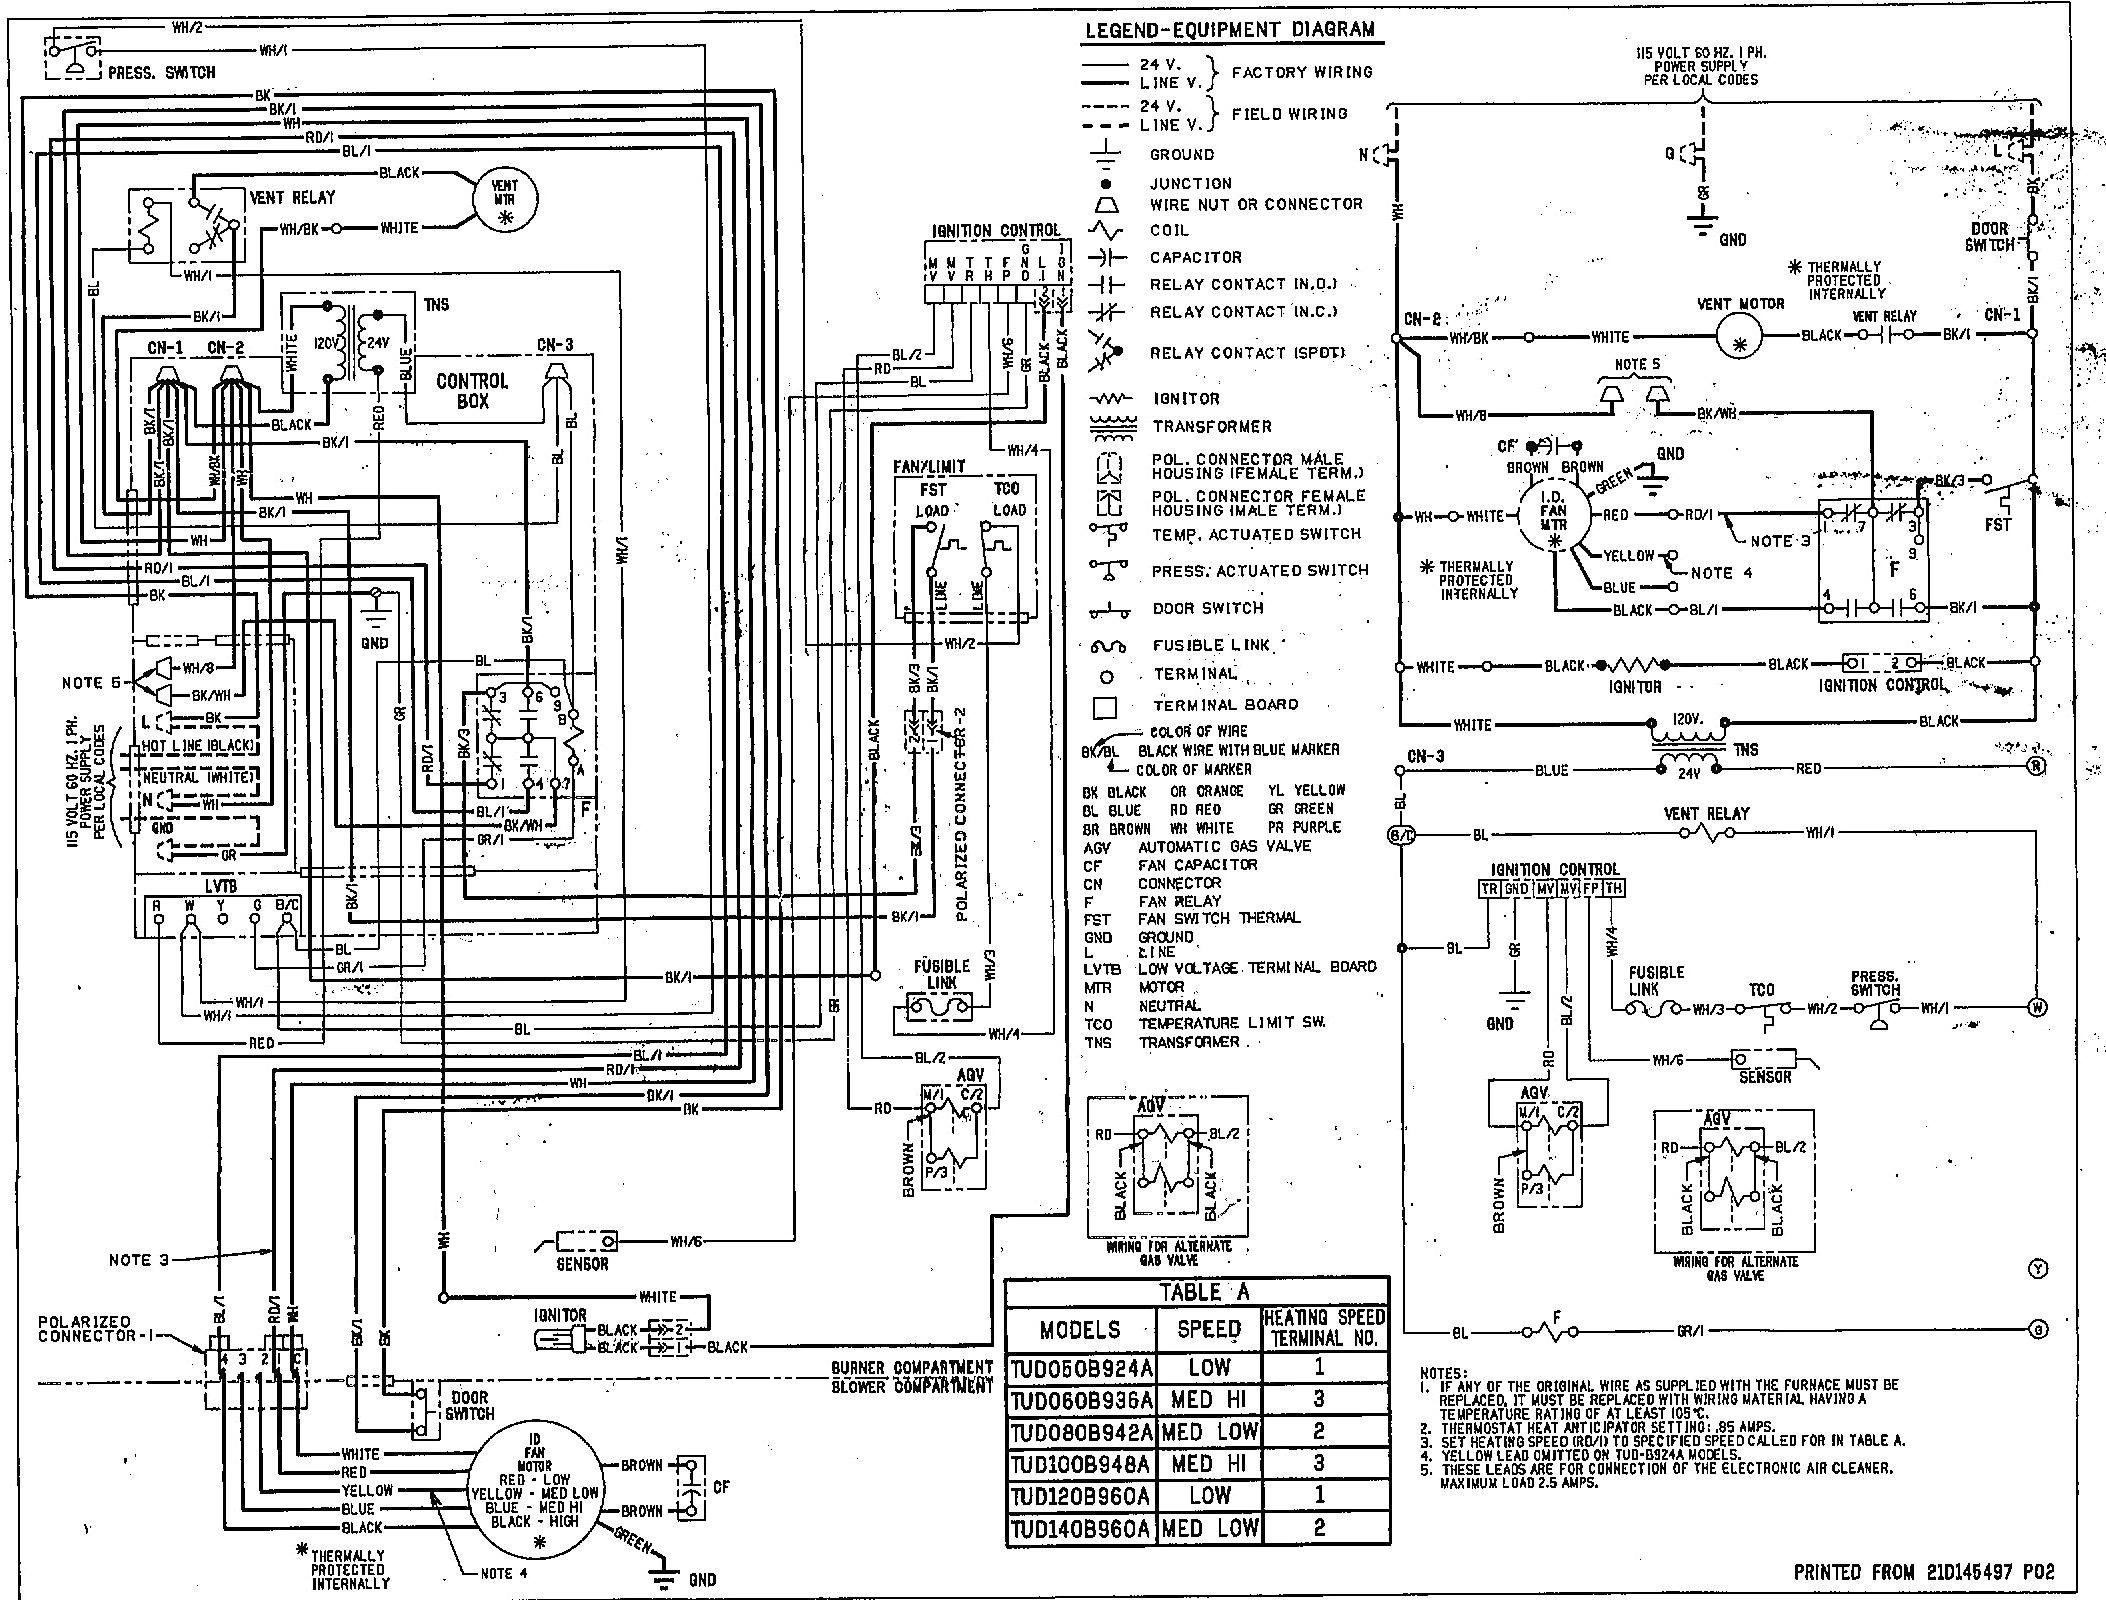 D791F5 Atwood Ac Wiring Diagram | Wiring Resources on water heater hook up diagrams, atwood g6a-8e water heater diagrams, atwood water heater relay wiring, coleman furnace parts diagrams, atwood rv furnace schematic, atwood furnaces diagrams, atwood hot water heater wiring diagram, electric furnace wiring diagrams, atwood gch6-6e water heater diagrams, rv furnace wiring diagrams,